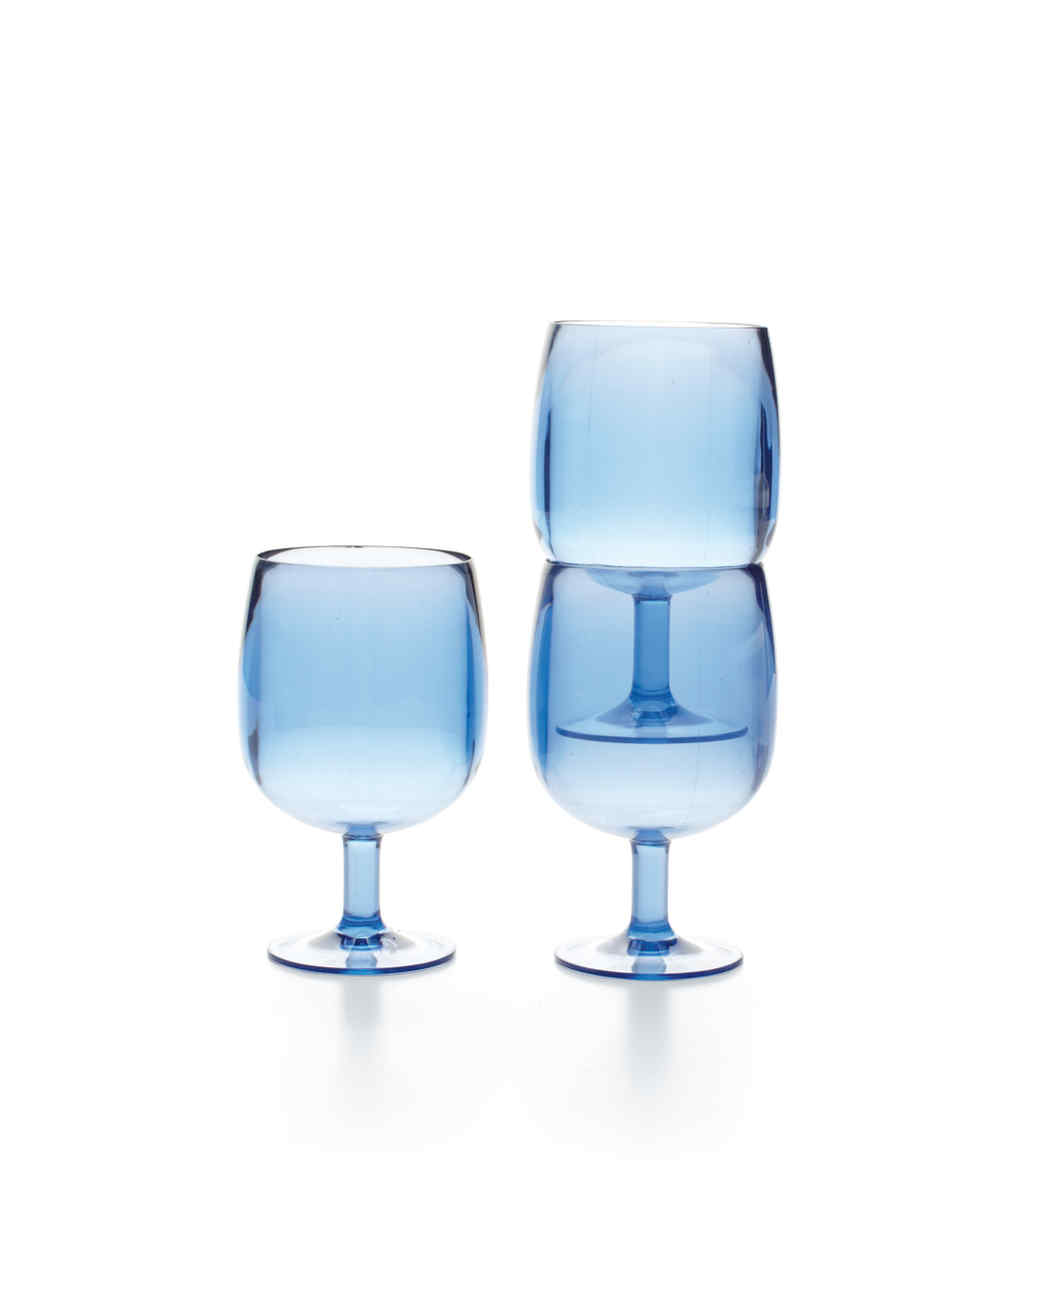 blue-glasses-mld108683.jpg